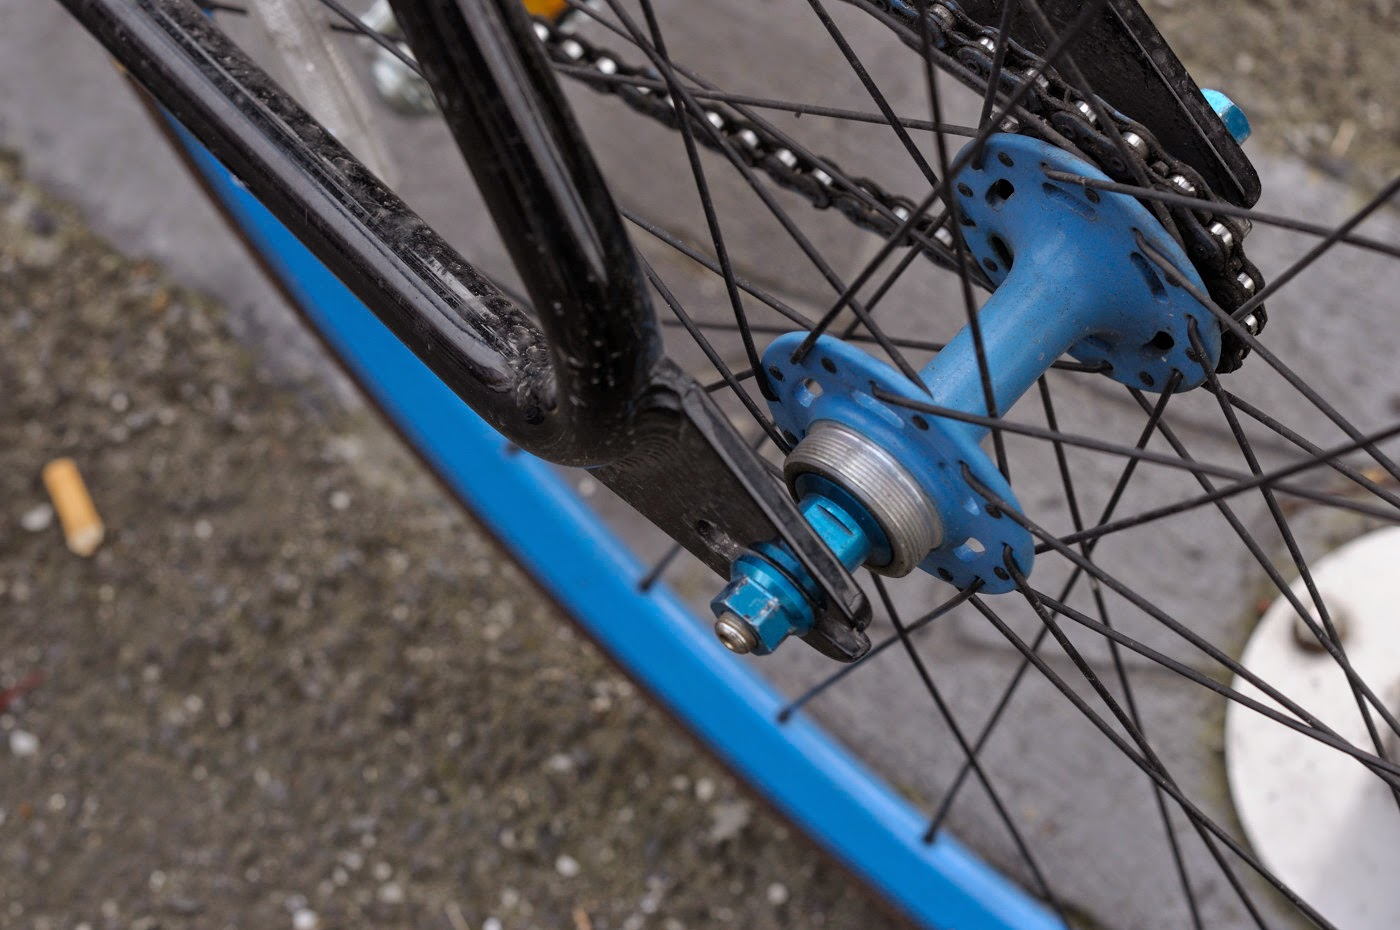 se bikes, PK ripper, bmx, melbourne, australia, custom, customised, bespoke, landing gear forks, blue, black, frame, tim macauley, the biketorialist, chain